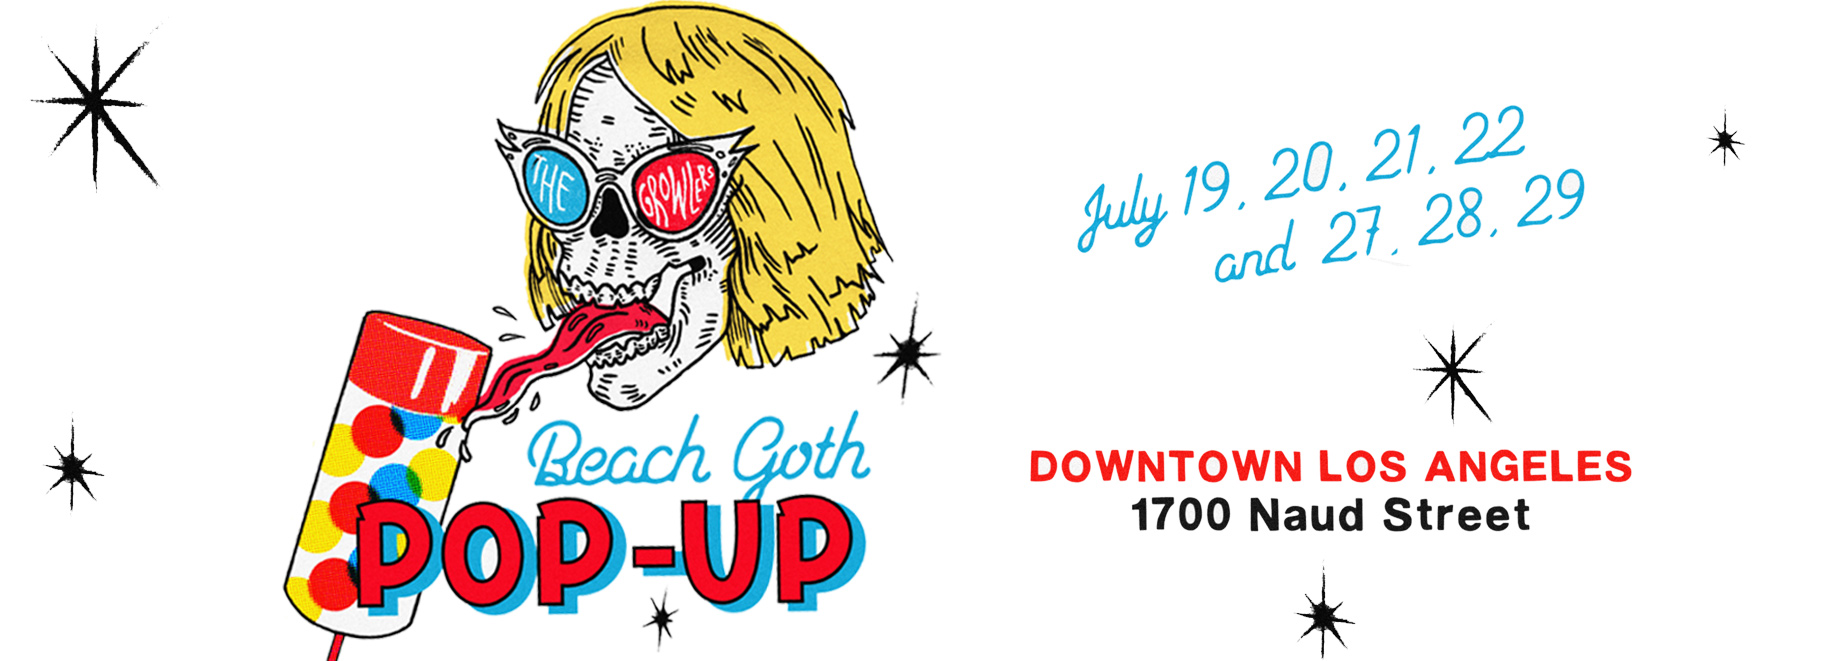 THE GROWLERS BEACH GOTH POPUP